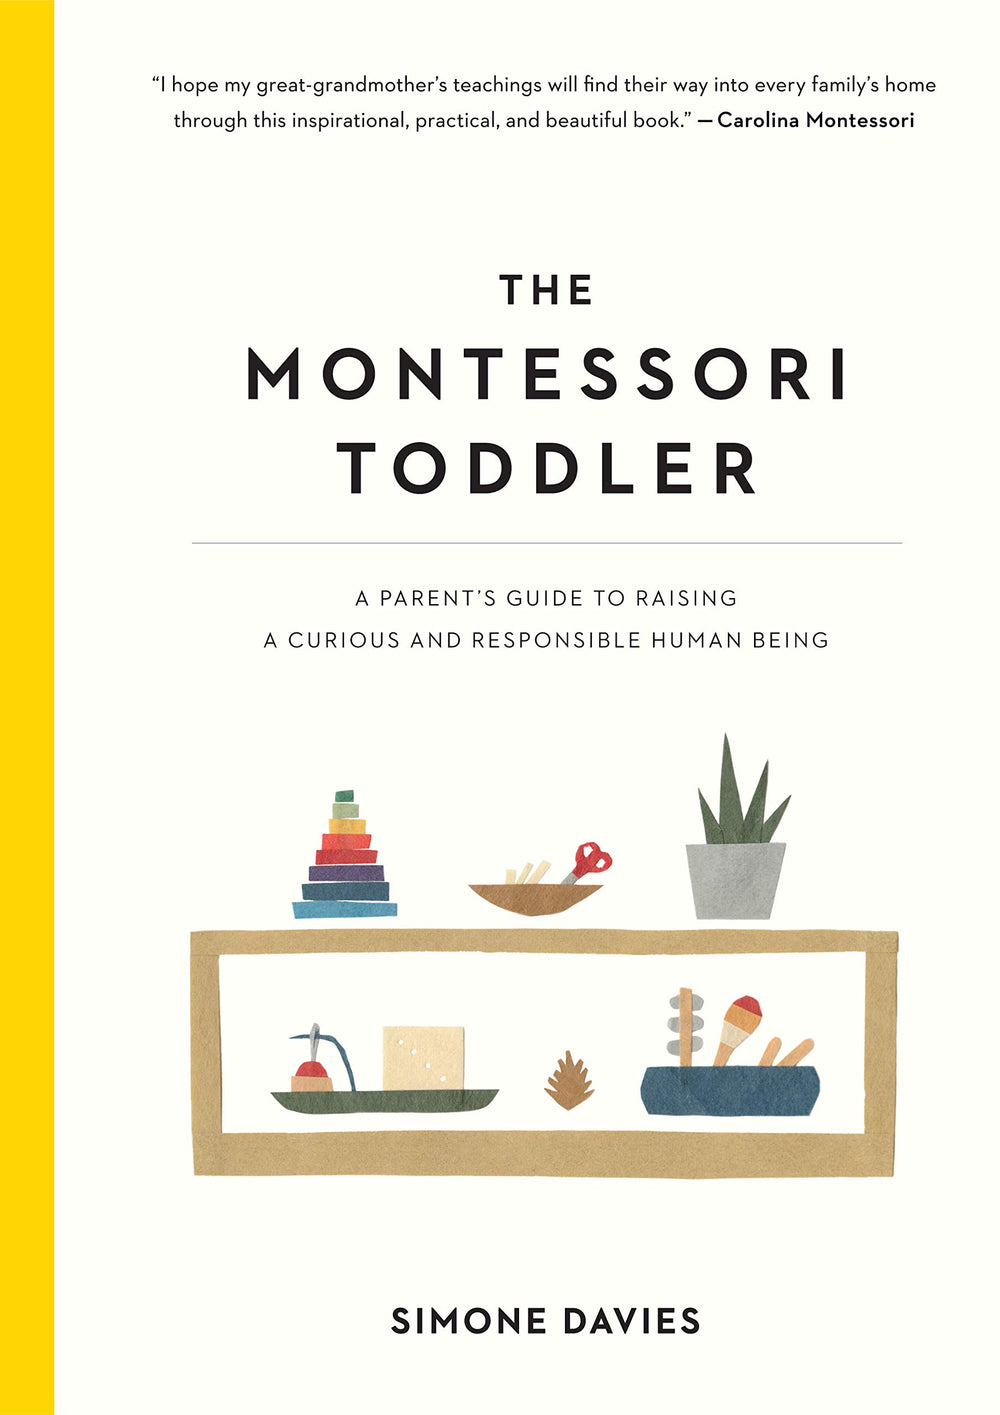 The Montessori Toddler - A Parents Guide to Raising a Curious and Responsible Human Being